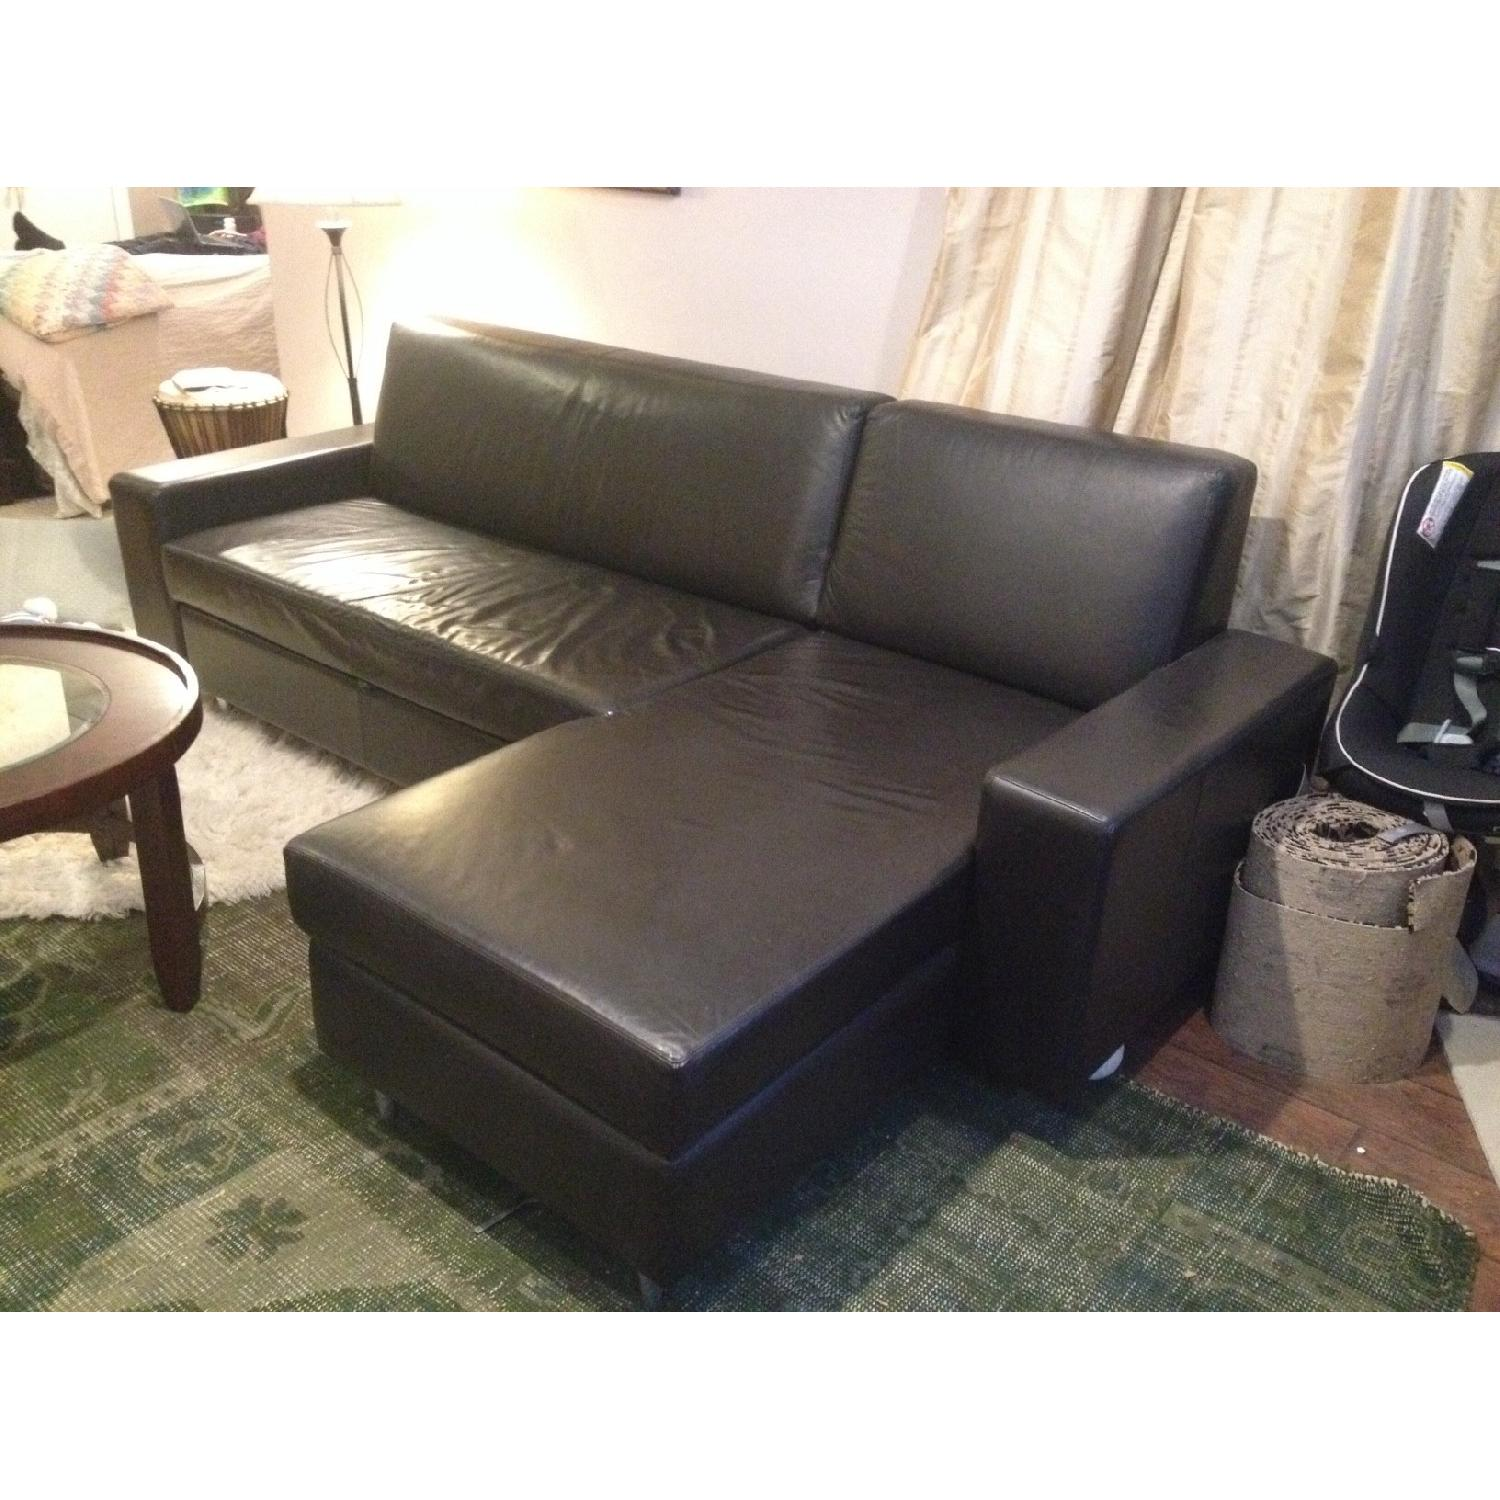 MDC Furniture Espresso L-Shape Leather Pull-Out Couch - image-3